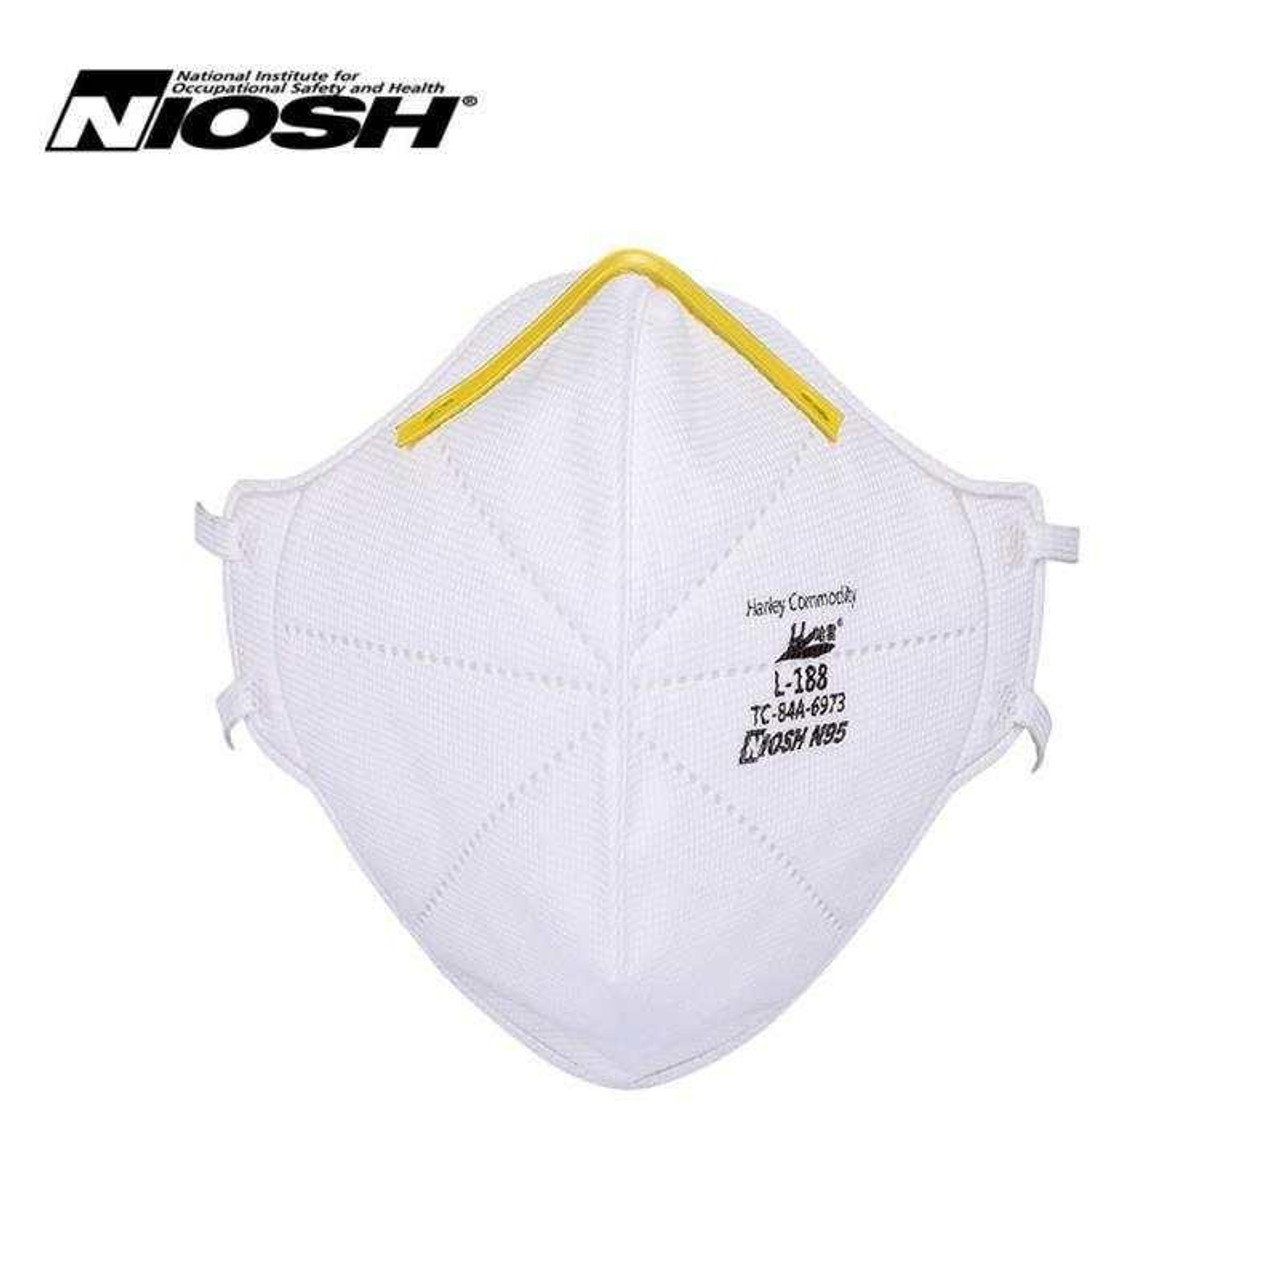 Harley Commodity N95 face mask with the NIOSH logo. This image is taken from the front.